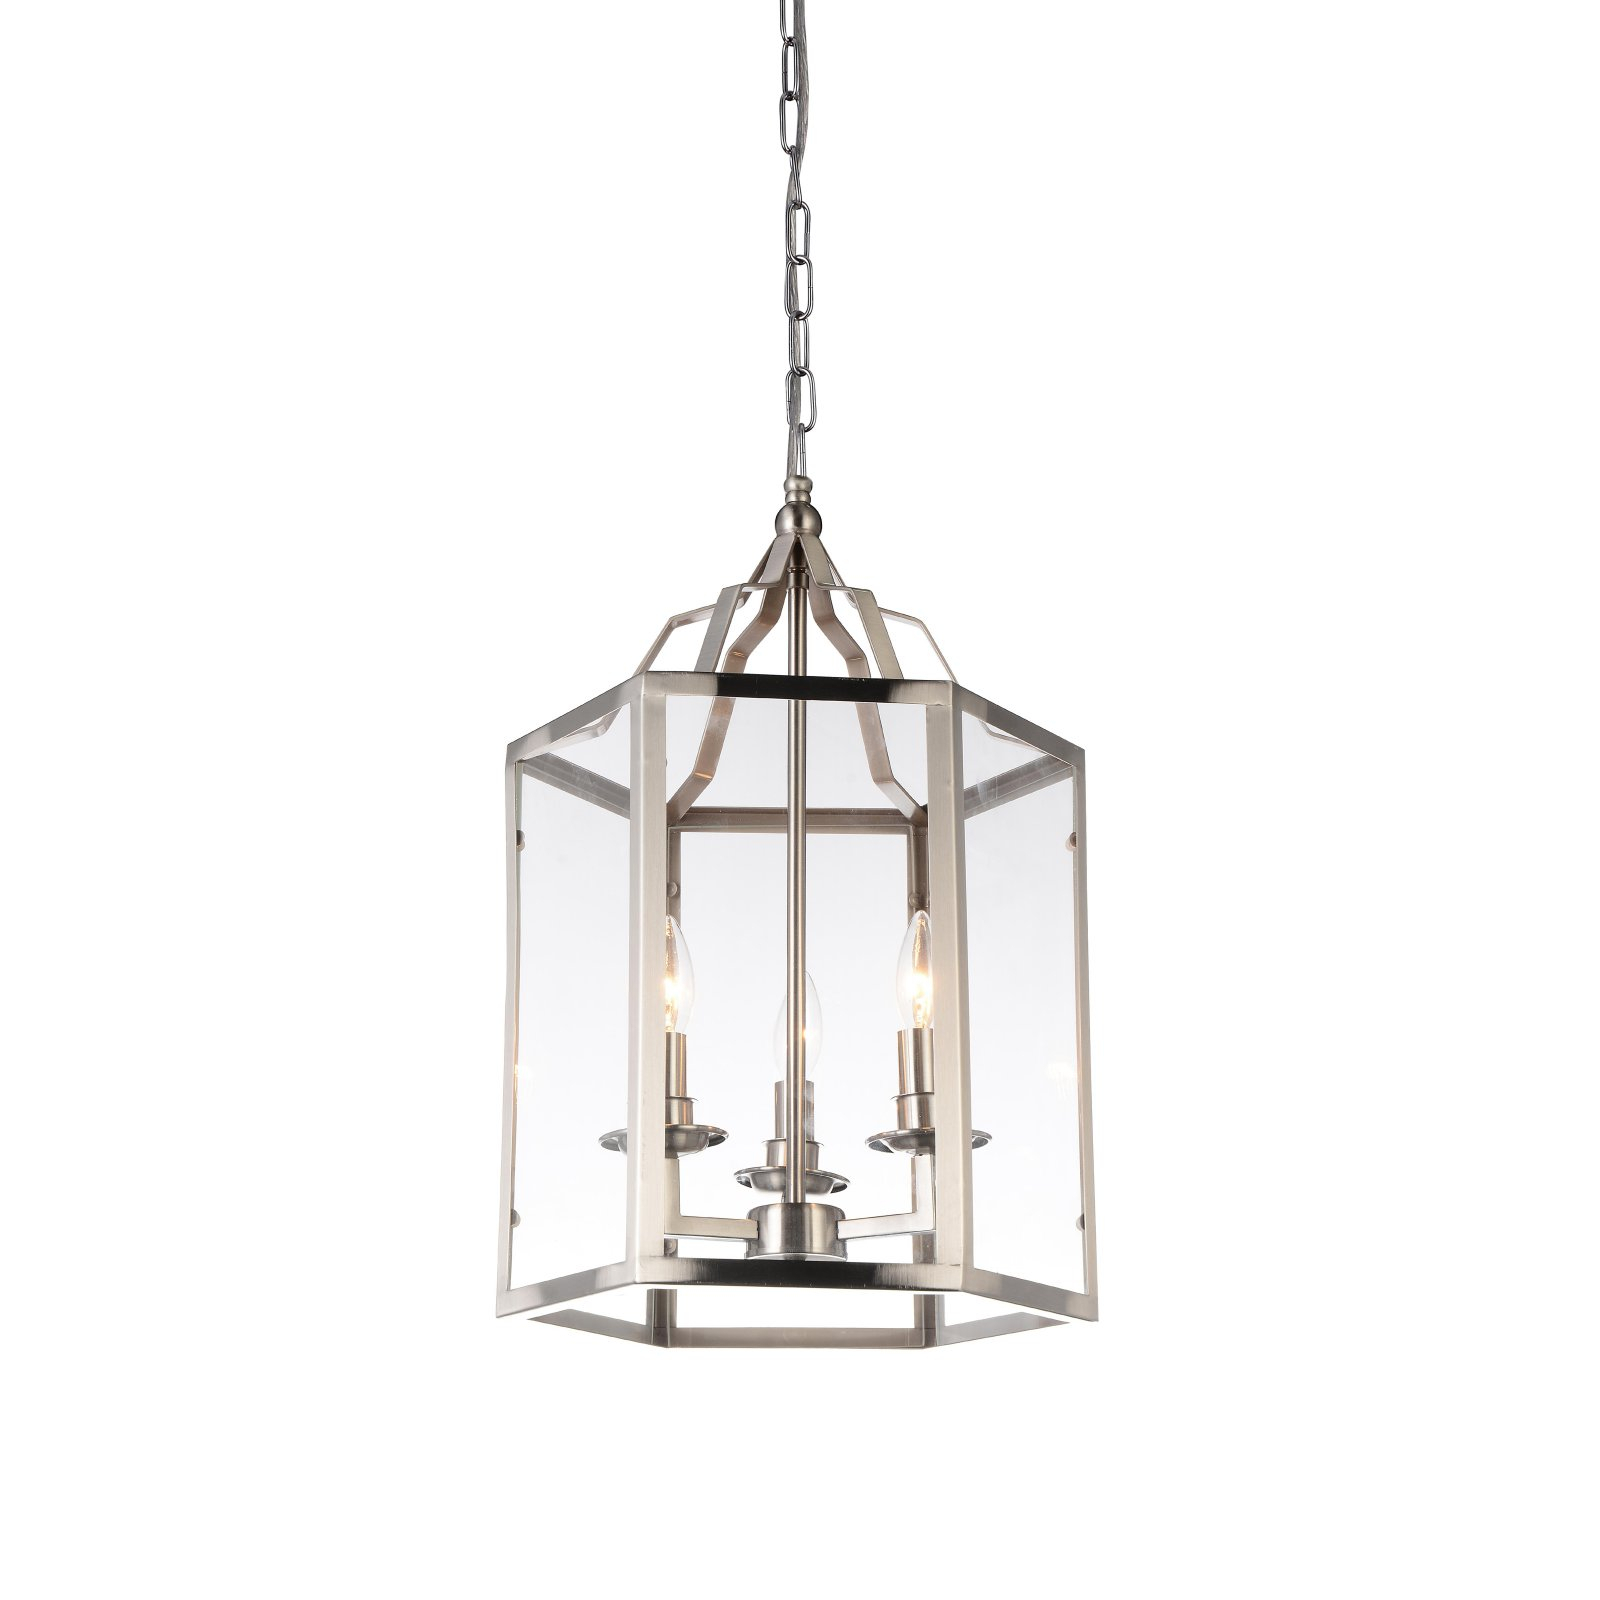 Cwi Lighting Desire Medium Pendant | Products In 2019 With Destrey 3 Light Lantern Square/rectangle Pendants (View 11 of 30)